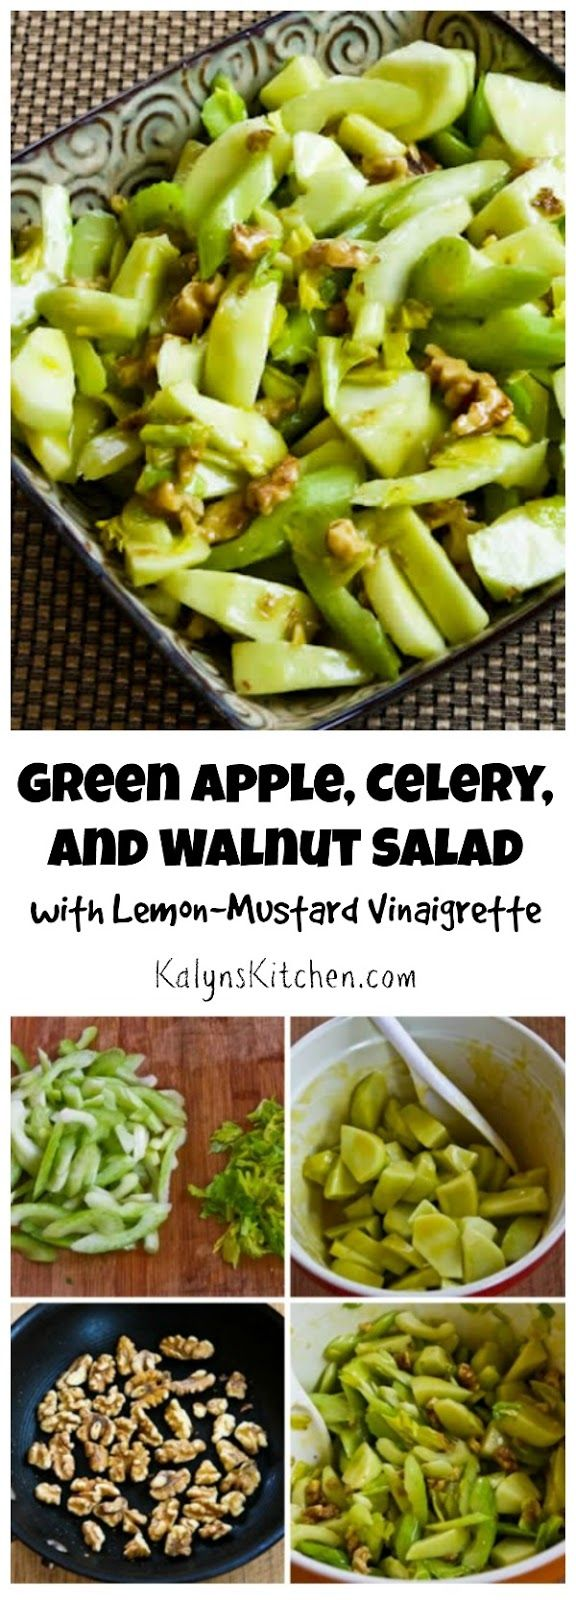 Green Apple, Celery, and Walnut Salad with Lemon-Mustard Vinaigrette is perfect for fall, and this could be a great salad for a holiday meal.  [found on KalynsKitchen.com]